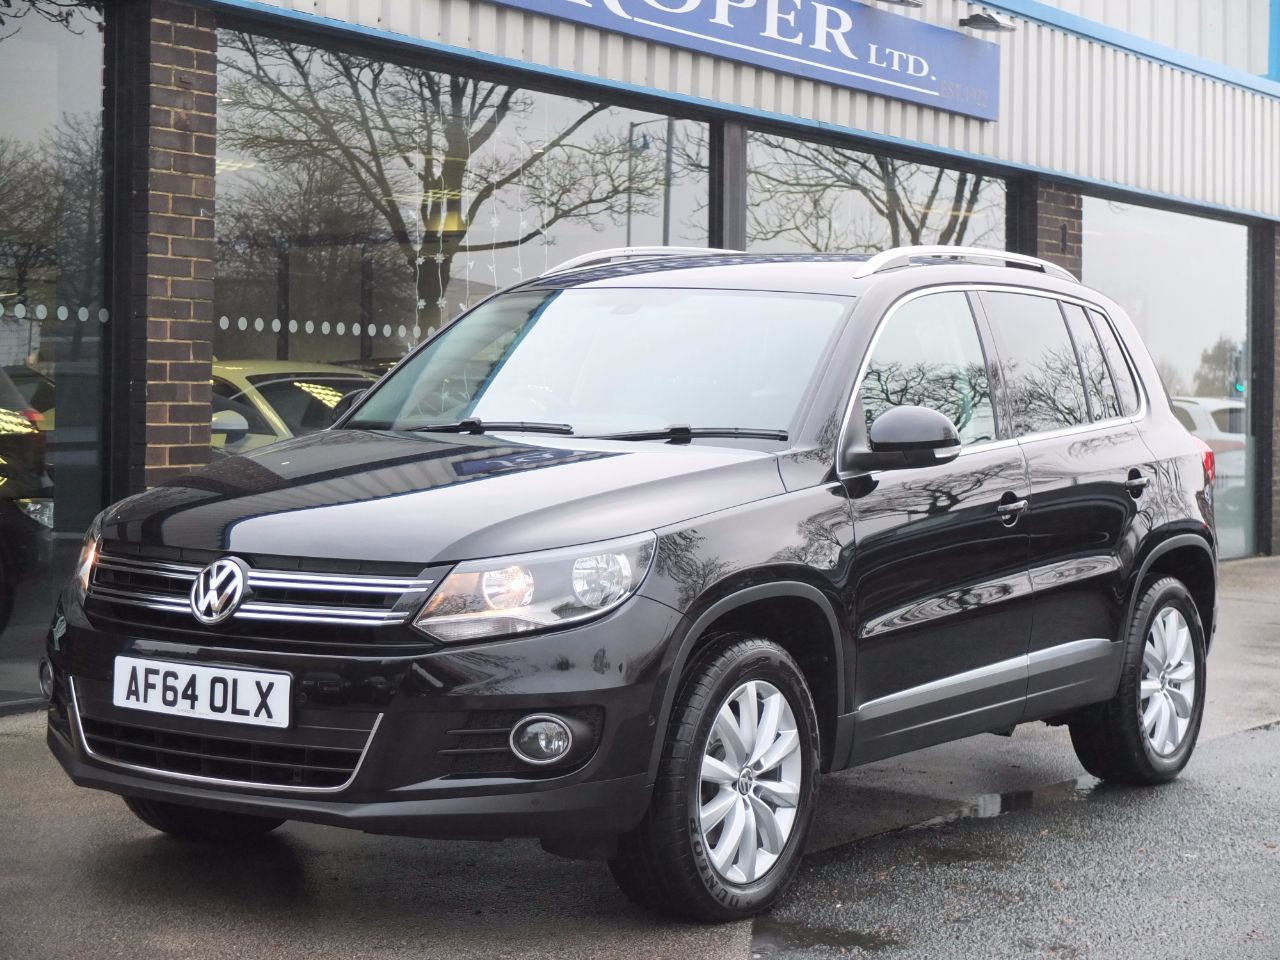 Volkswagen Tiguan 2.0 TDi BlueMotion Tech Match 4MOTION (RNS315 Satellite Navigation) Estate Diesel Deep Black PearlescentVolkswagen Tiguan 2.0 TDi BlueMotion Tech Match 4MOTION (RNS315 Satellite Navigation) Estate Diesel Deep Black Pearlescent at fa Roper Ltd Bradford